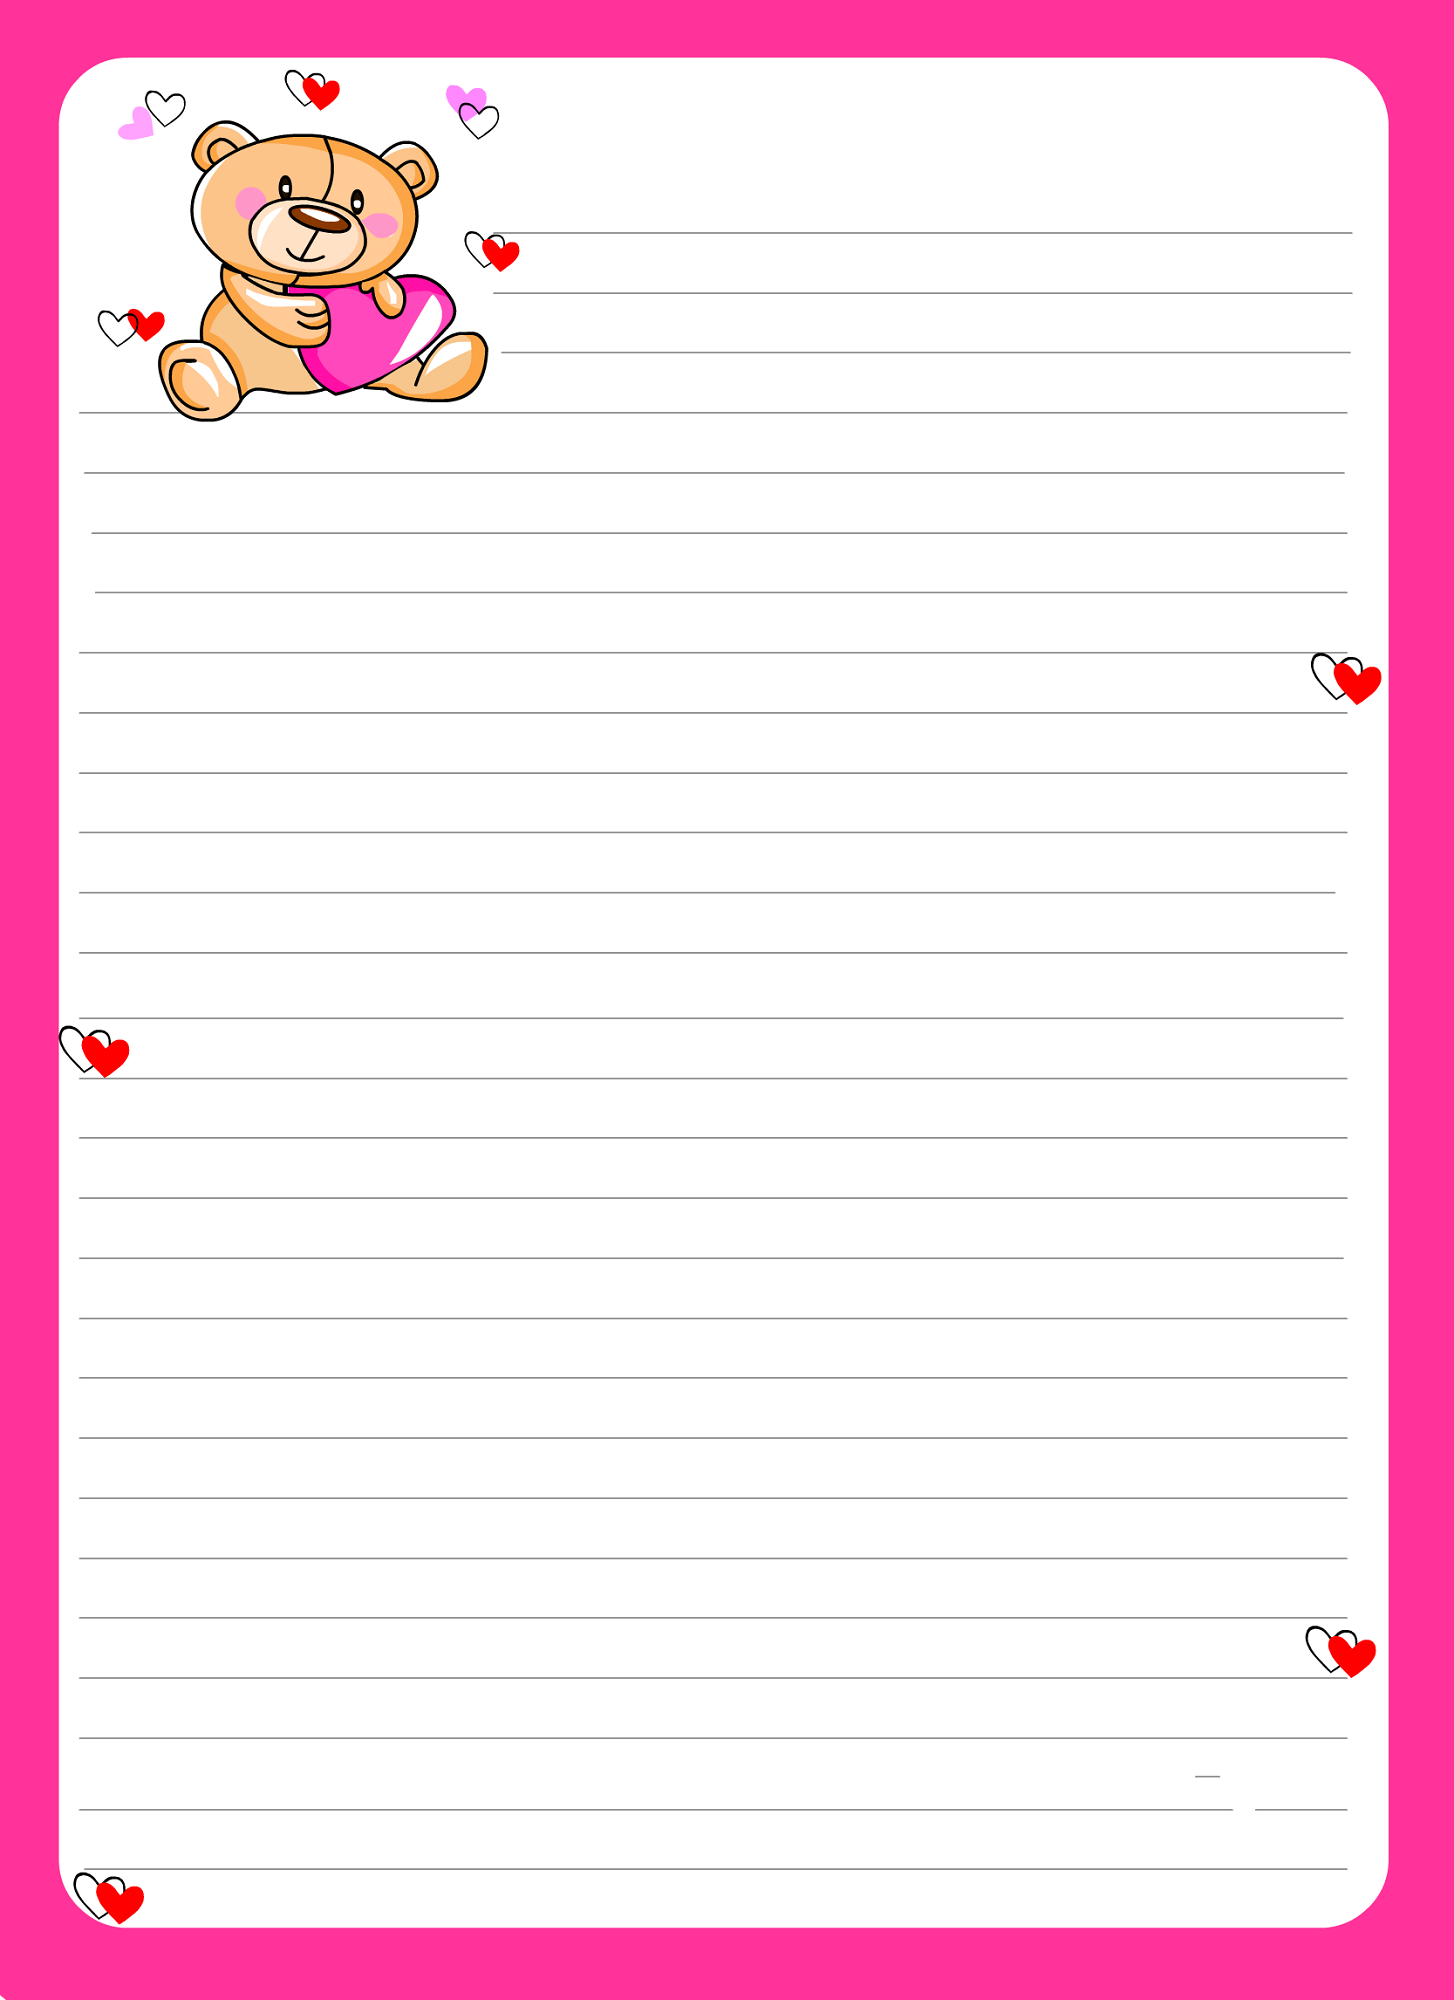 Lined paper for kids activity shelter notebook paper for Learning to write paper template